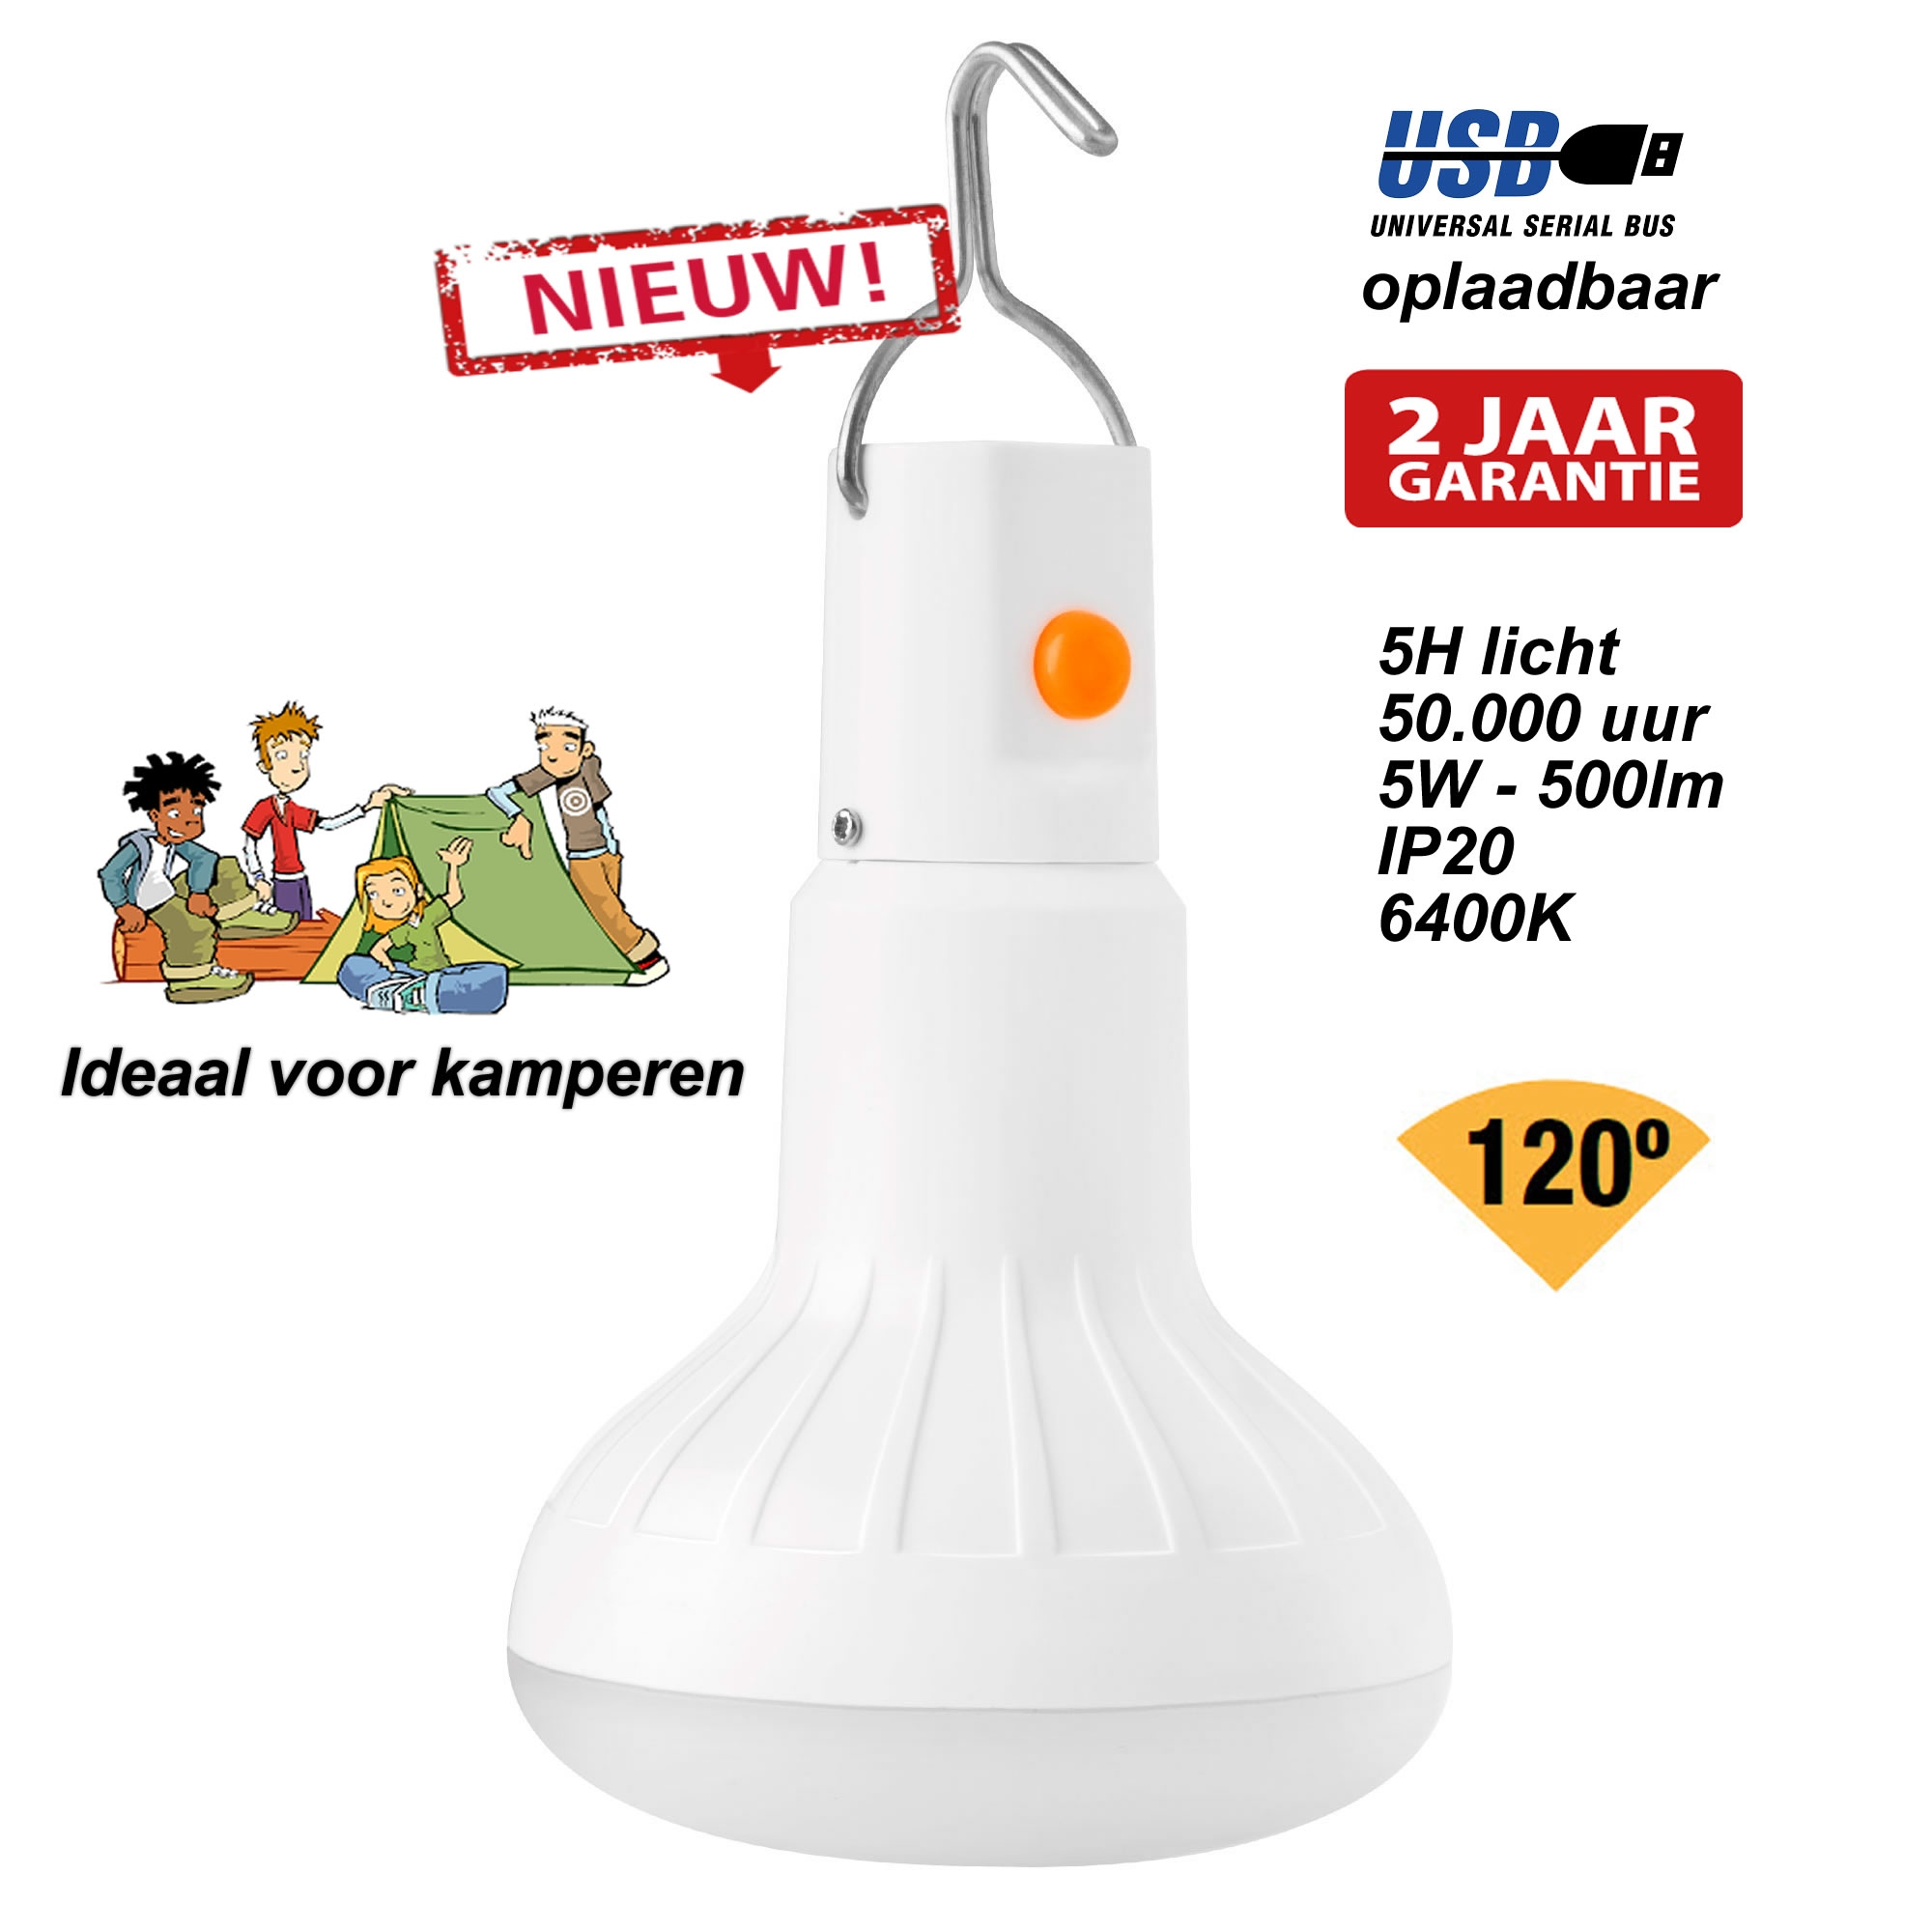 LED lamp voor in de tent - LED 5W oplaadbaar